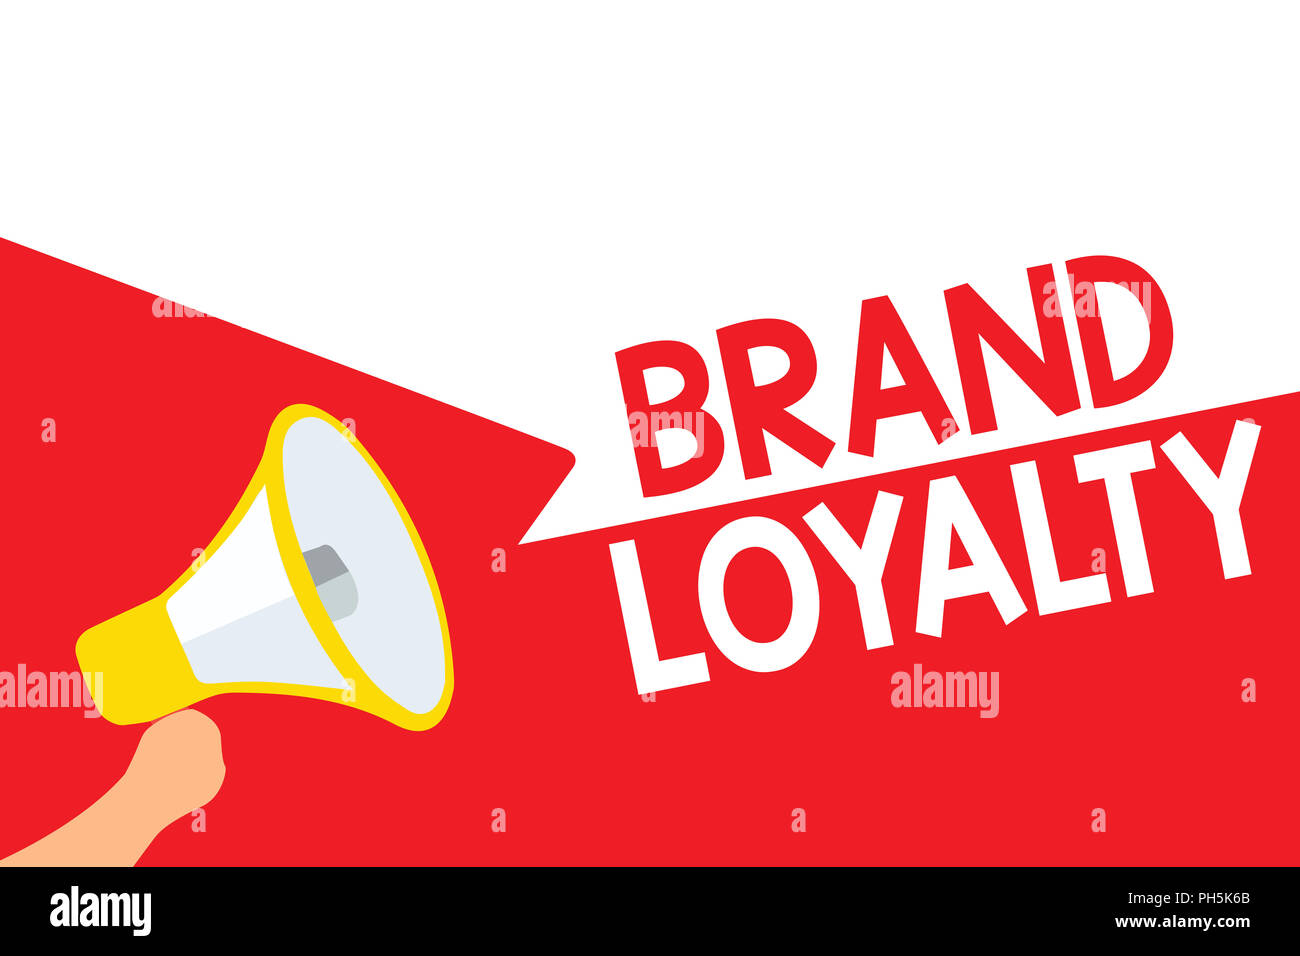 Trusted Care Stock Photos Images Alamy Bandana Impor 29 Word Writing Text Brand Loyalty Business Concept For Repeat Purchase Ambassador Patronage Favorite Megaphone